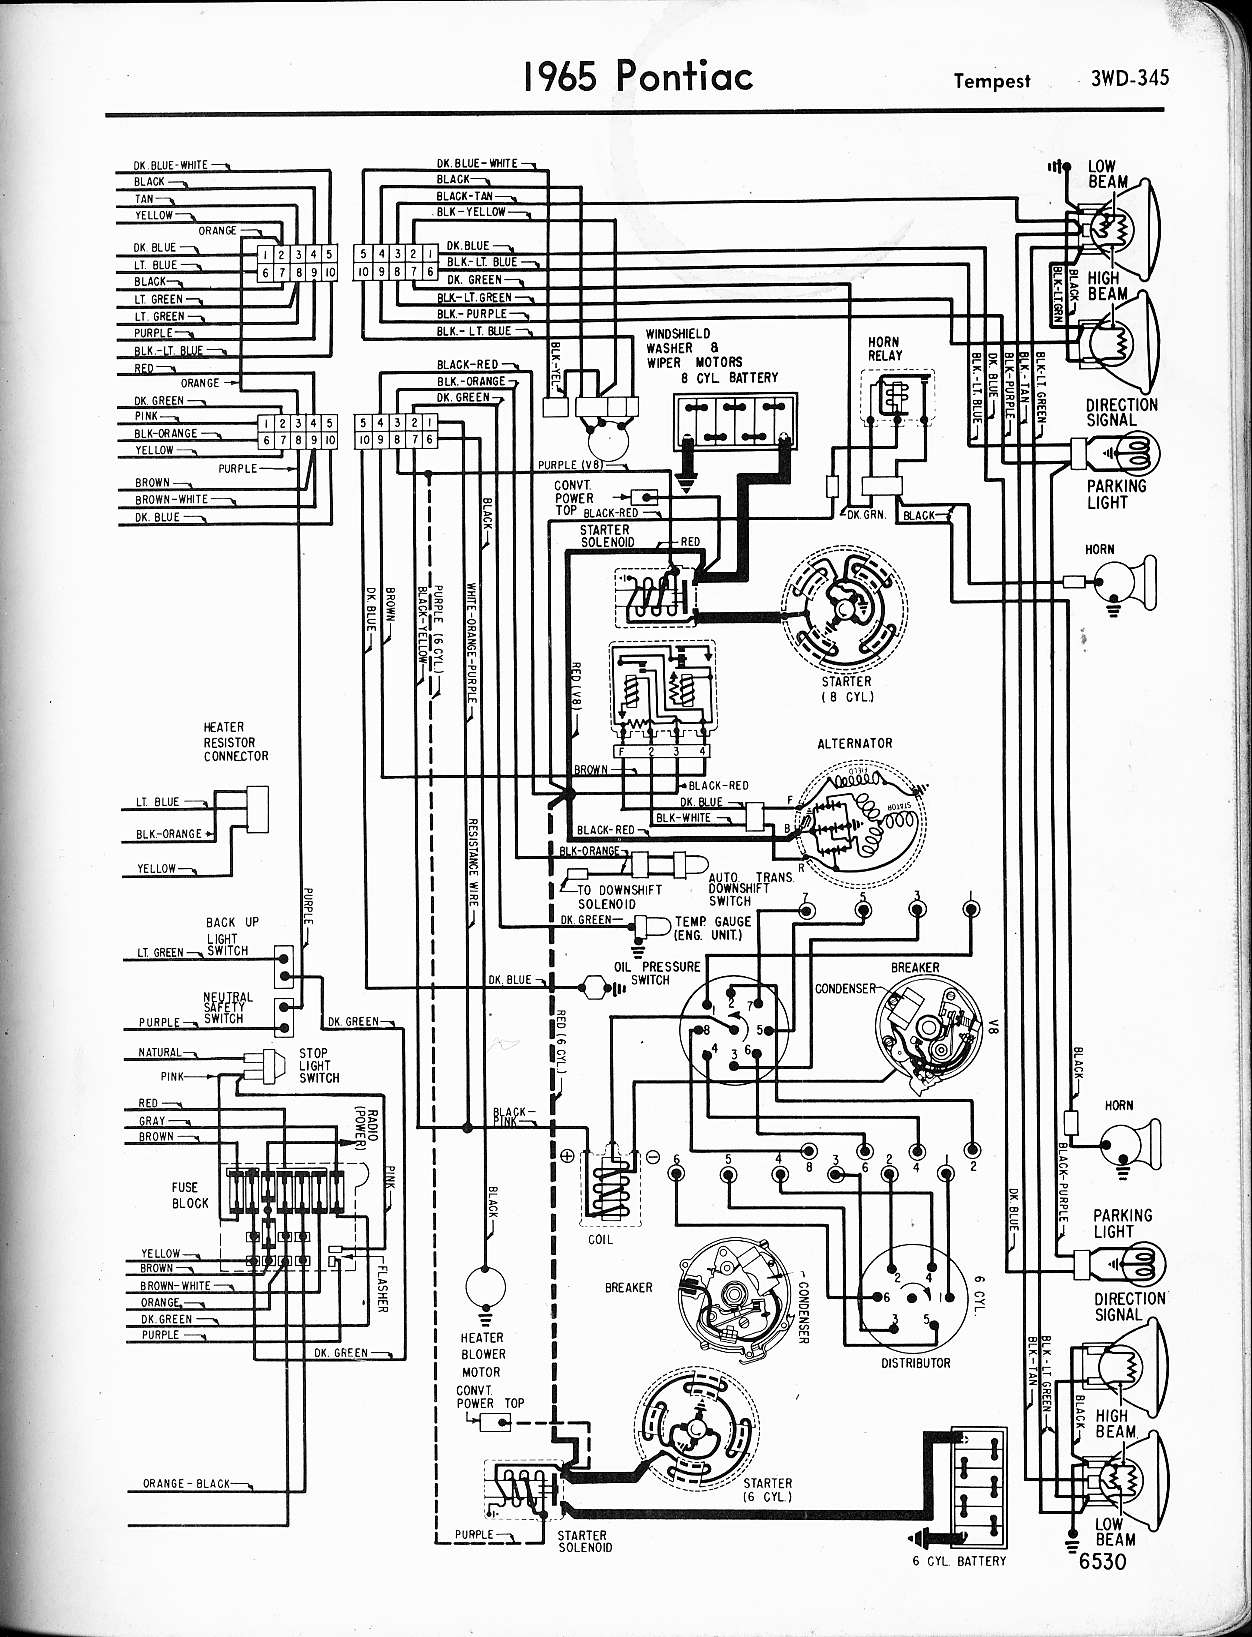 65 gto wiring diagram wiring diagrams u2022 rh autonomia co 65 gto wiring diagram schematic 1965 gto dash wiring diagram